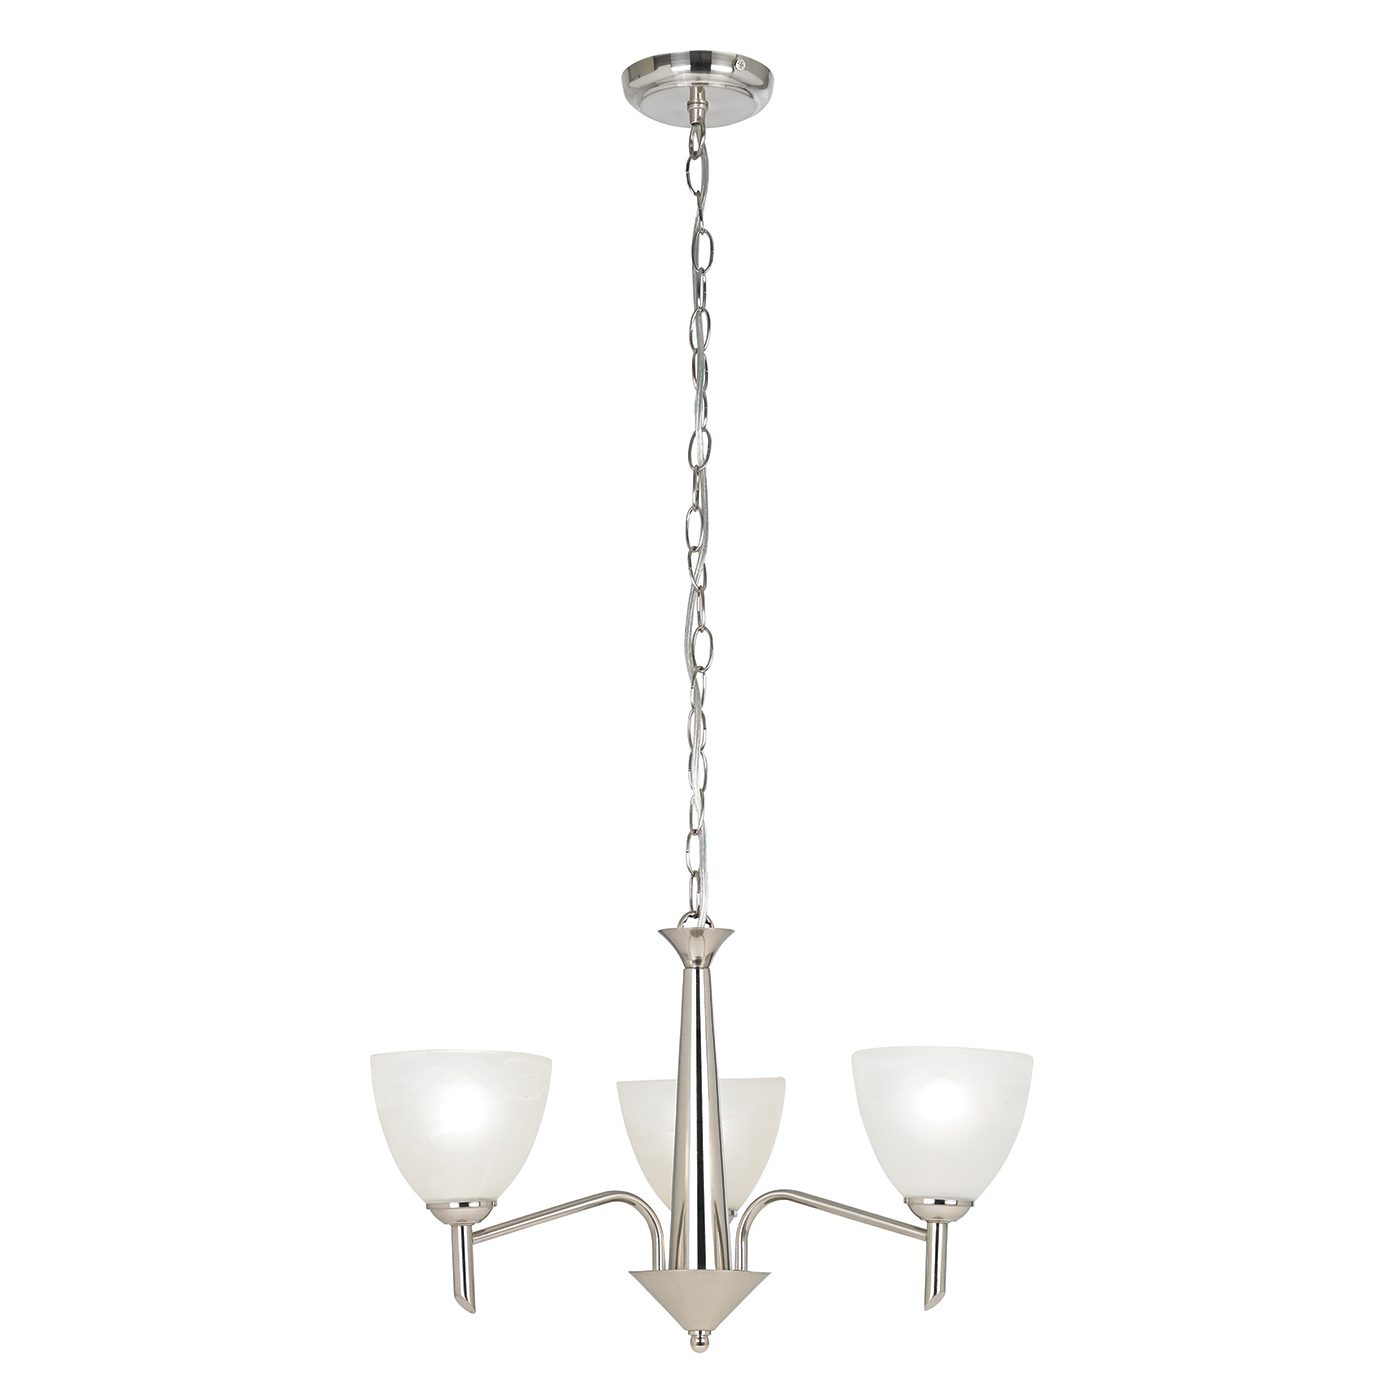 Endon Neeson pendant 3x 40W Satin nickel effect plate & alabaster glass